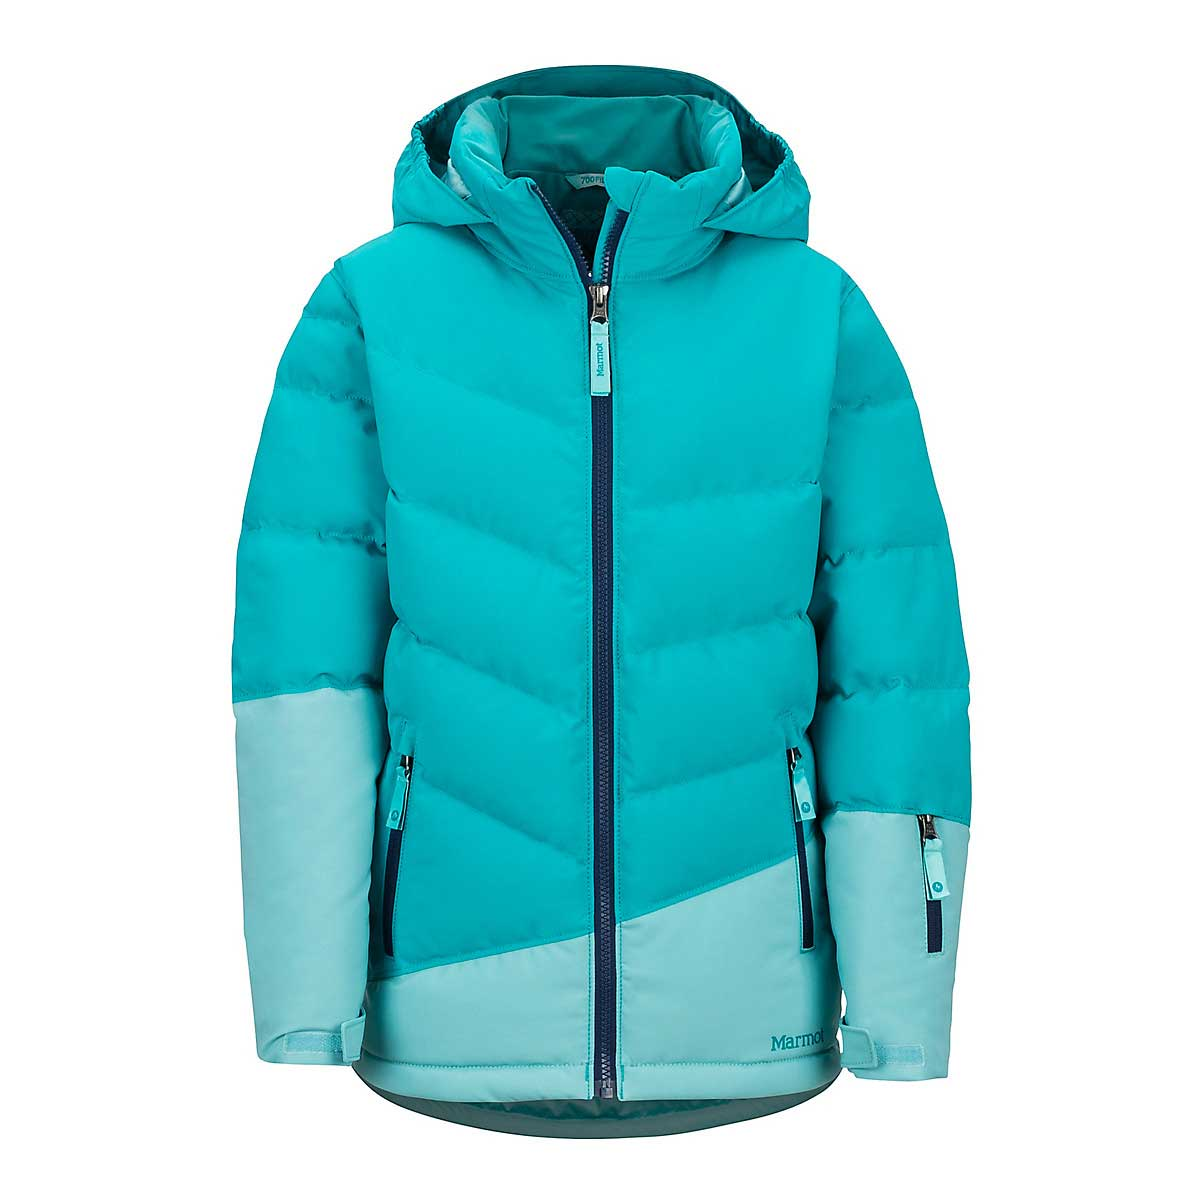 Marmot Girls' Slingshot Jacket in Blue Tile Aquarelle